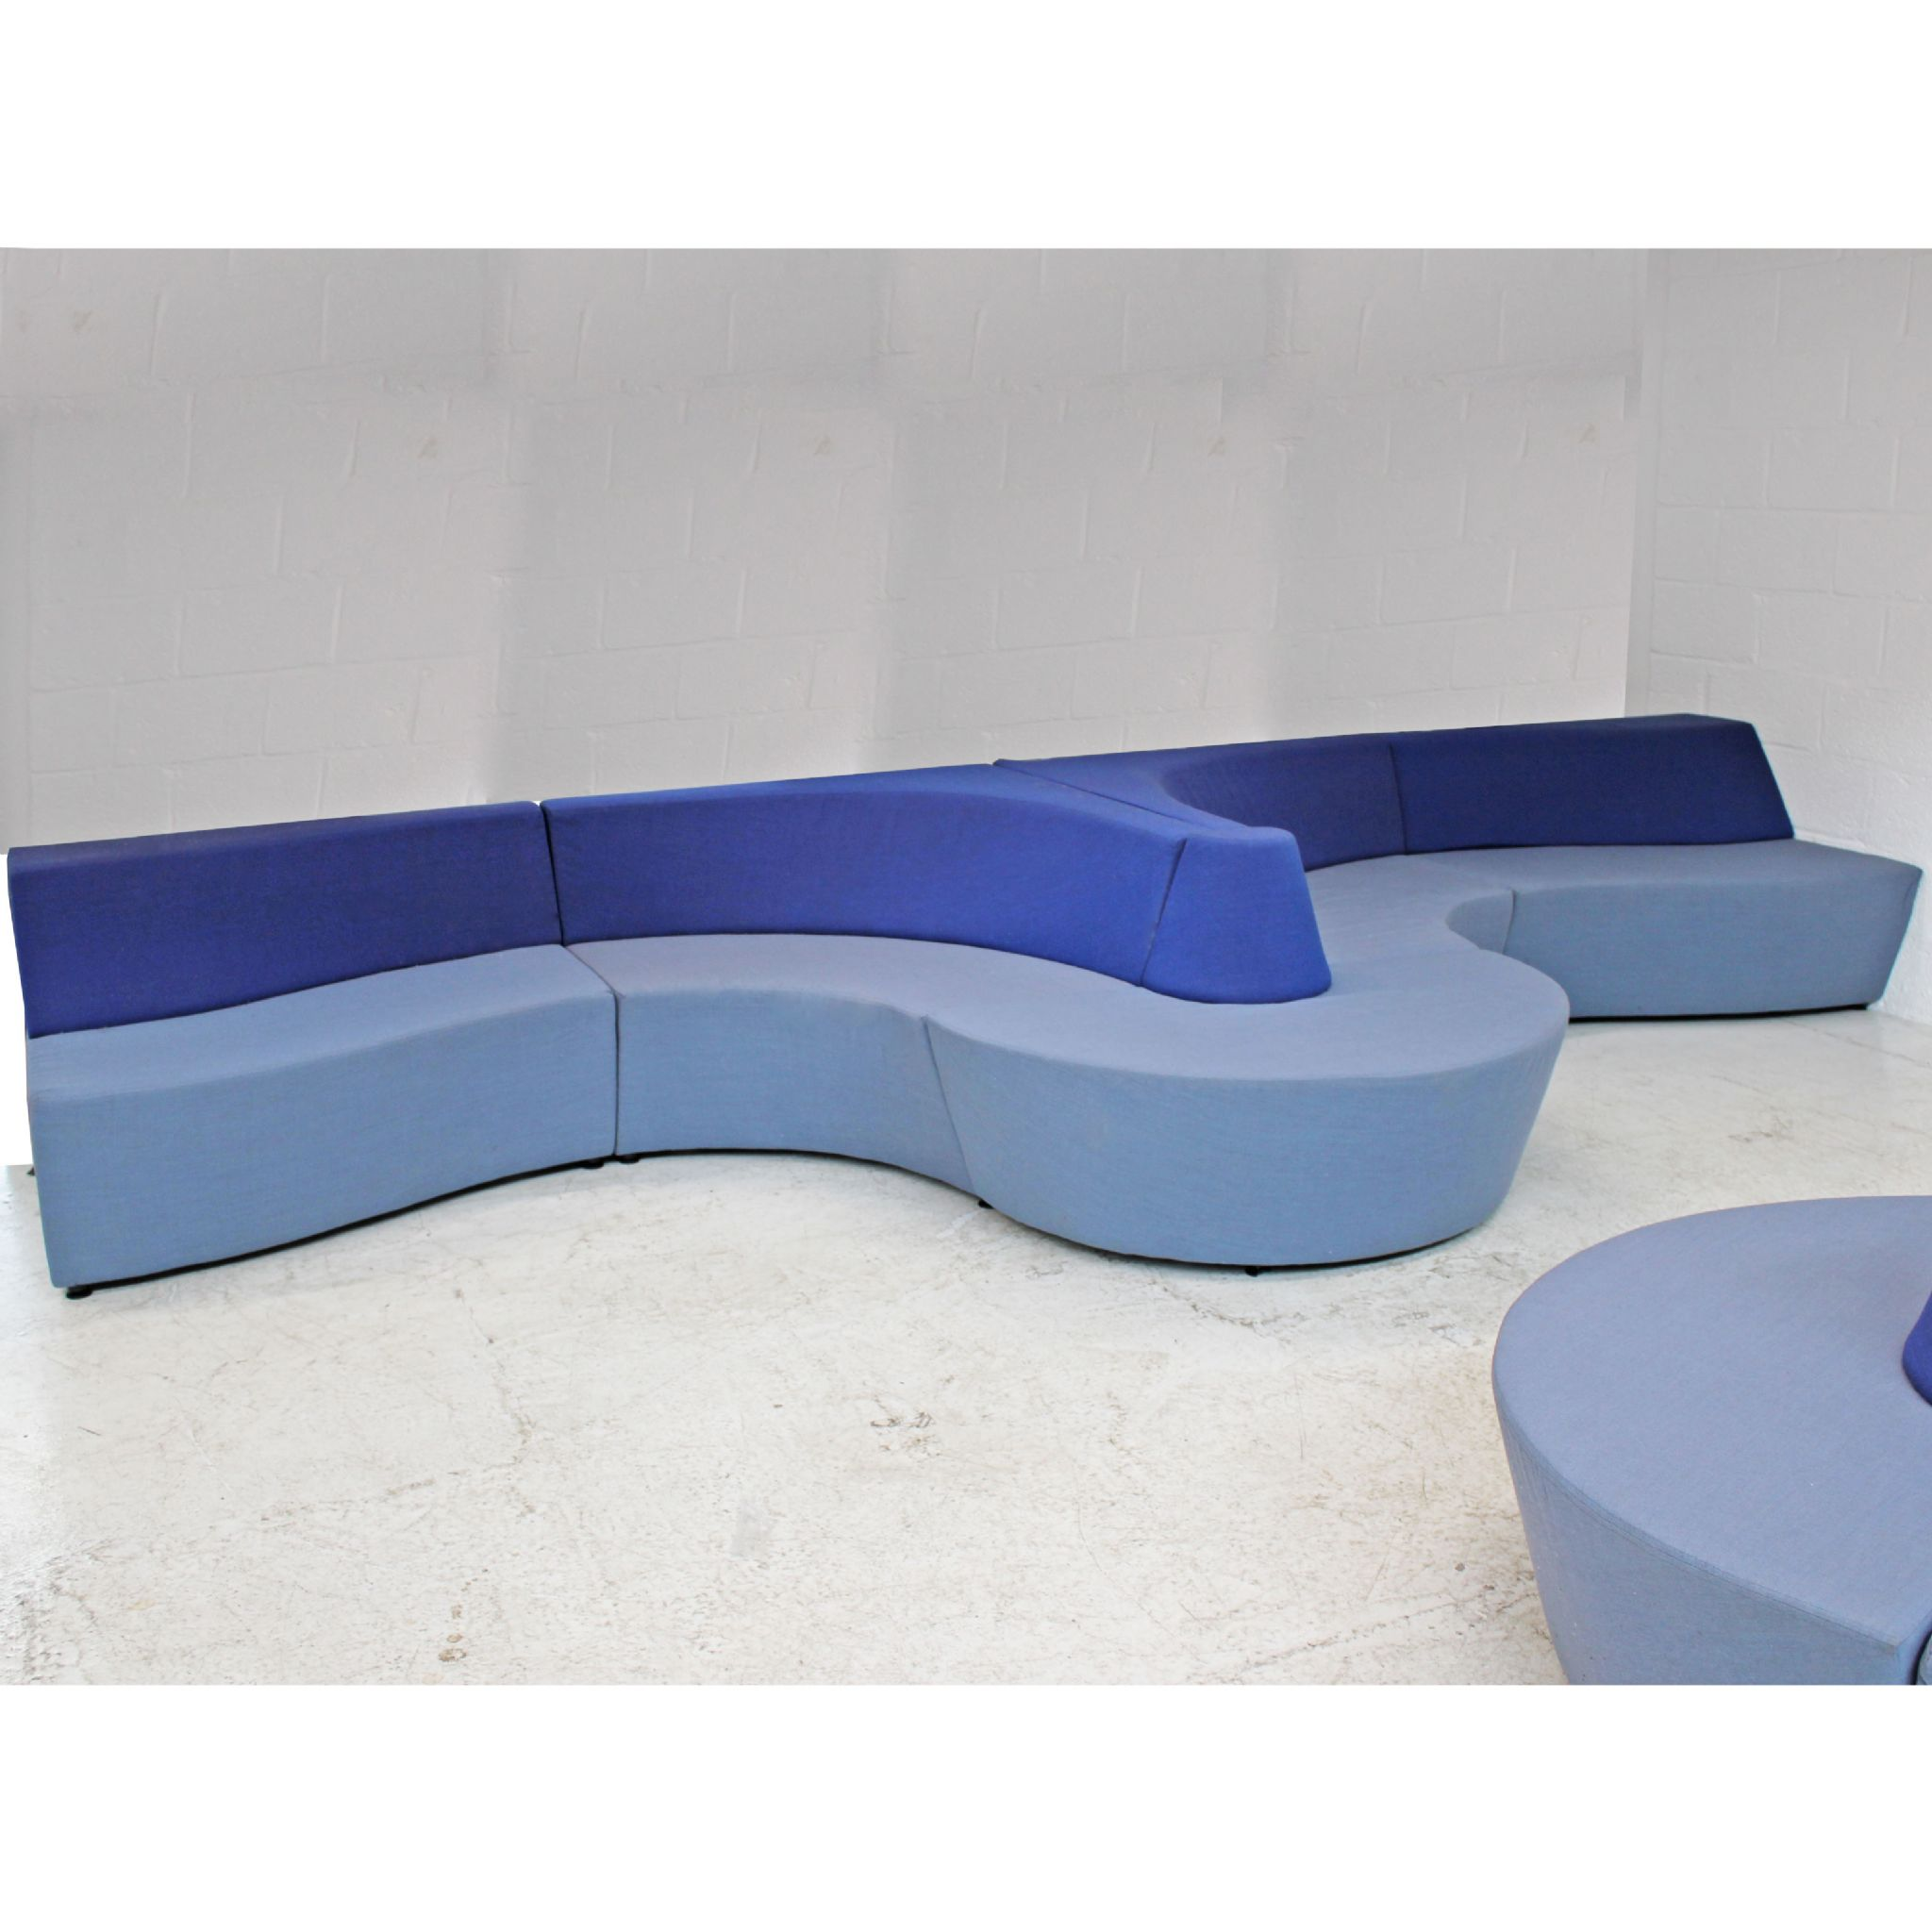 Connection Horizon - Large Curved Sofa